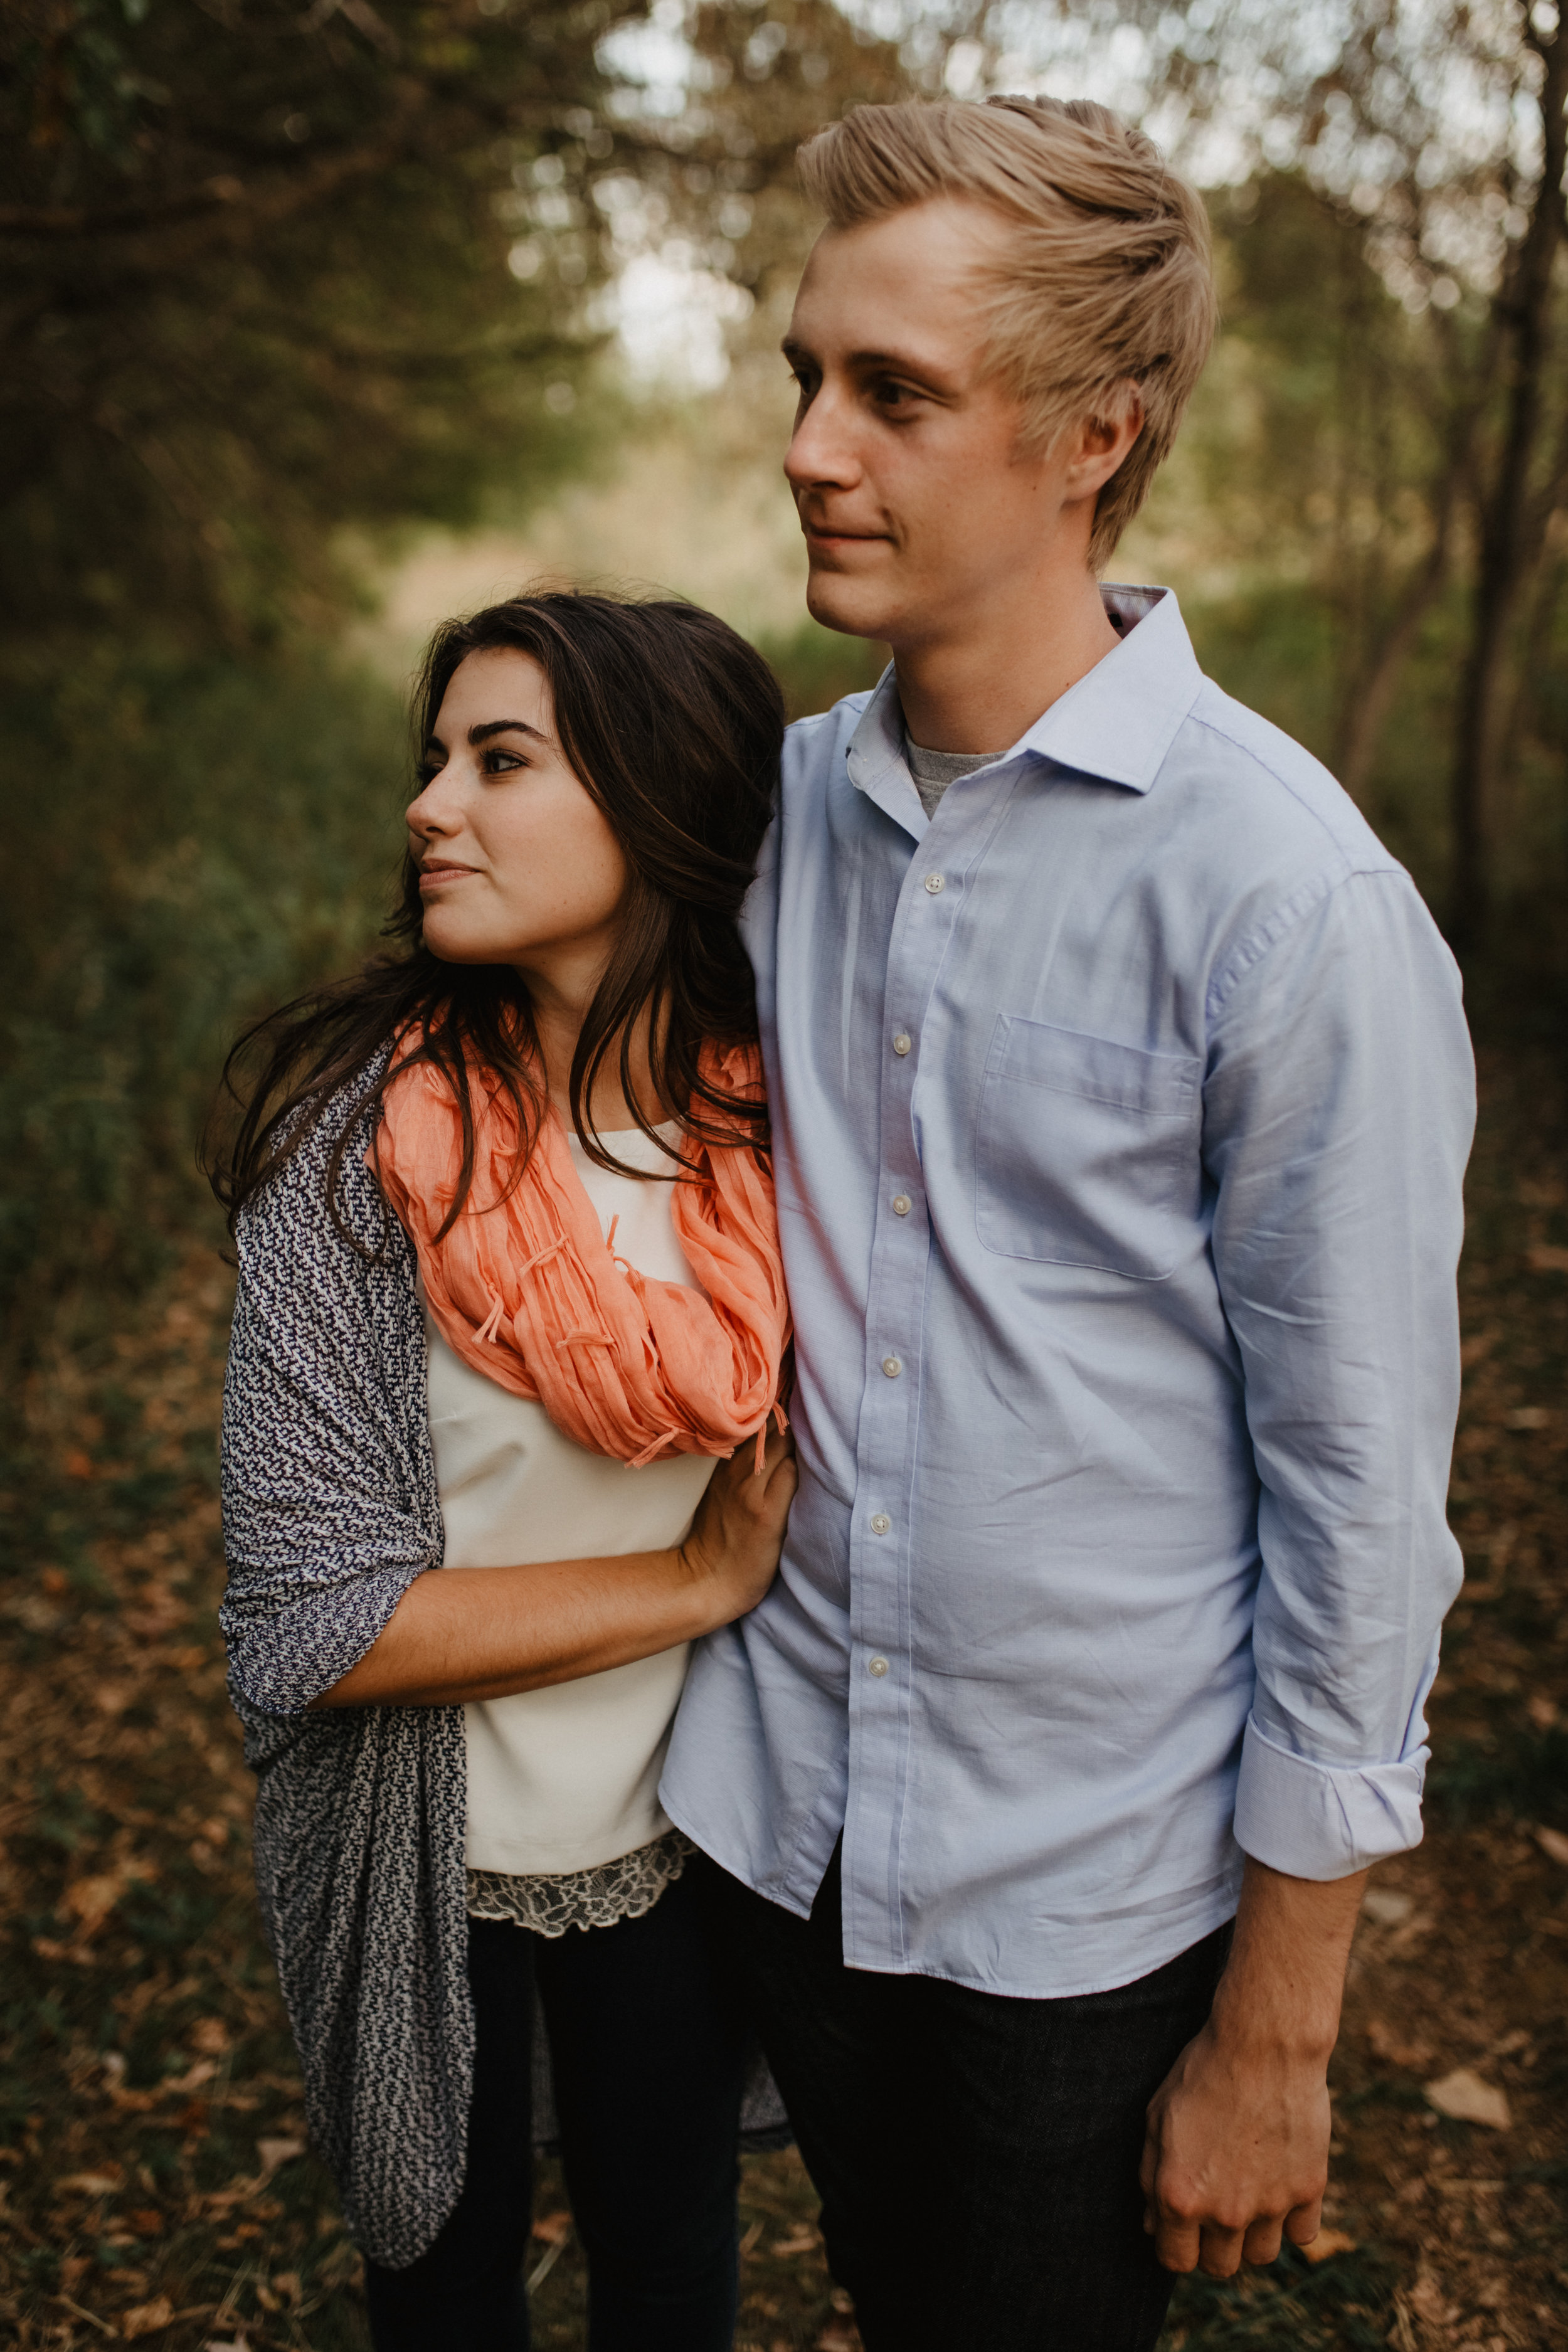 Claire-Rex-Pickar-Engagement-Photography-Collection-358.jpg